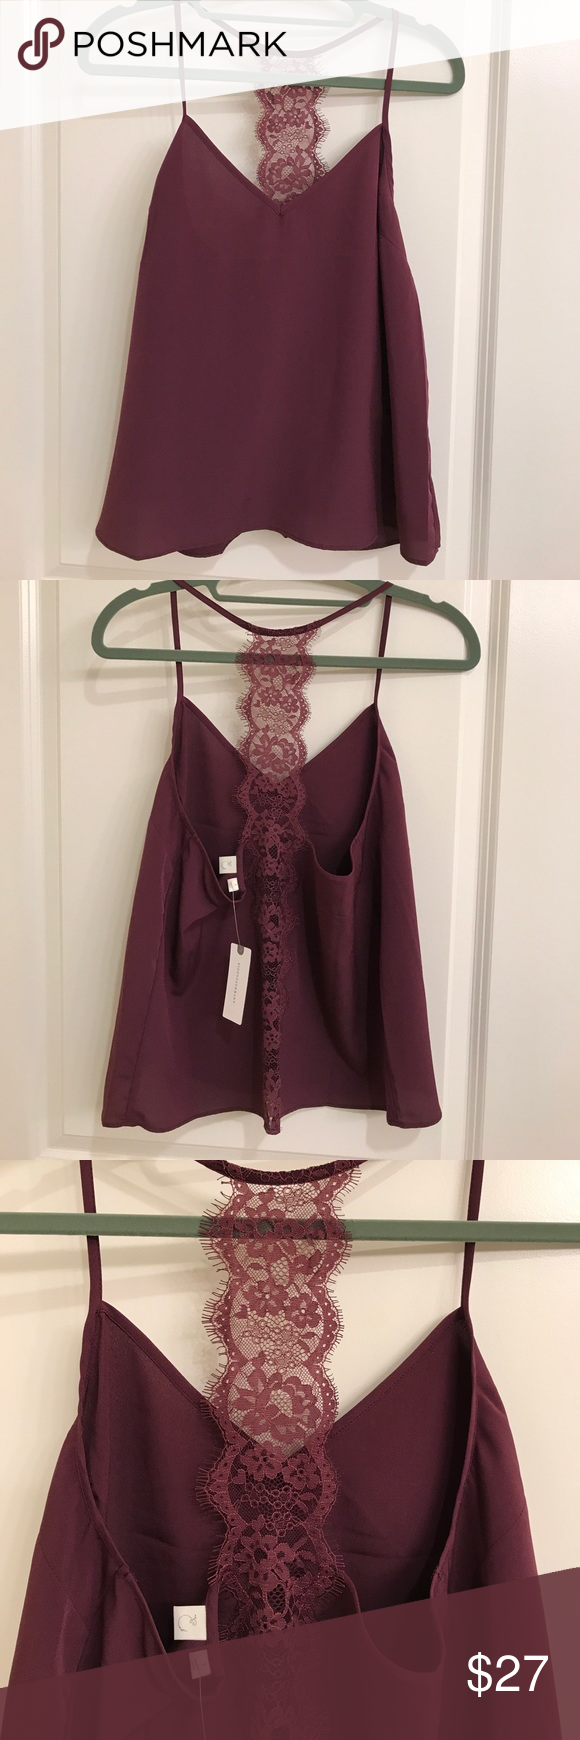 NWT Goergeous plum lace camisole NWT and never before worn plum silk camisole with lace on the back. Very pretty and lose too great for under blazers or for a date! Anthropologie Tops Camisoles